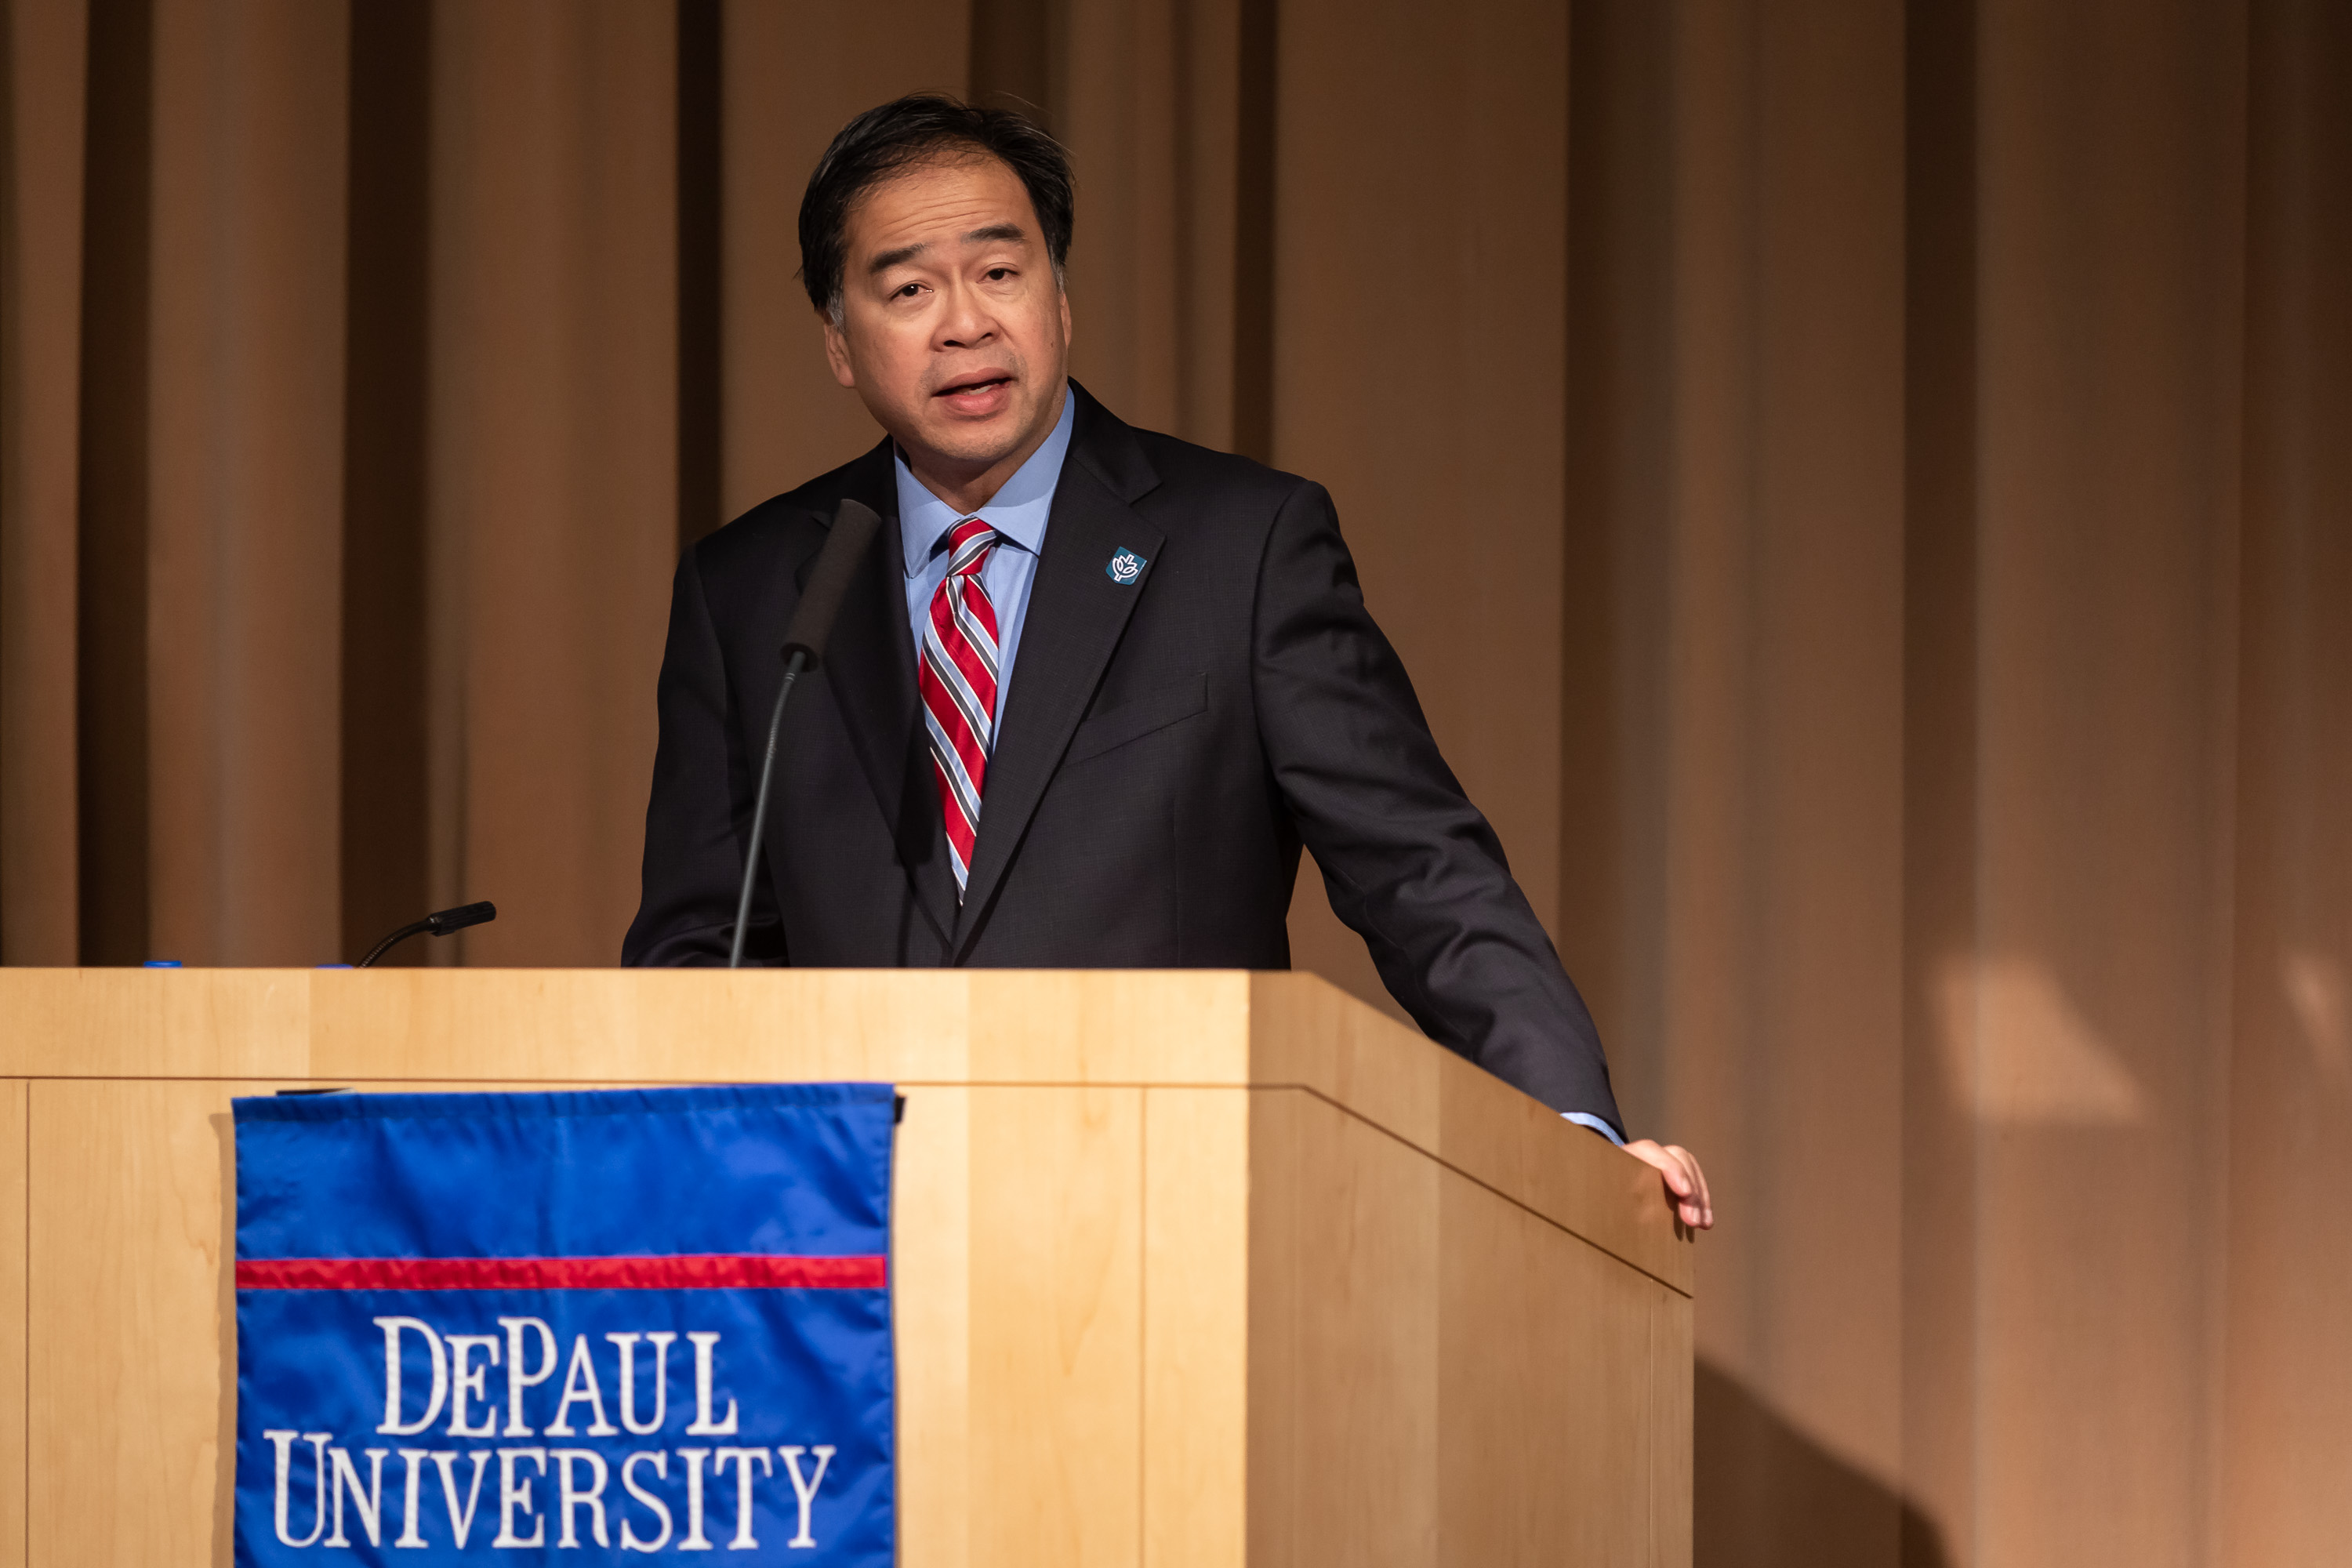 A. Gabriel Esteban, Ph.D., president of DePaul University, introduces Wes Moore during the event on March 14 in the Lincoln Park Student Center. (DePaul University/Jeff Carrion)